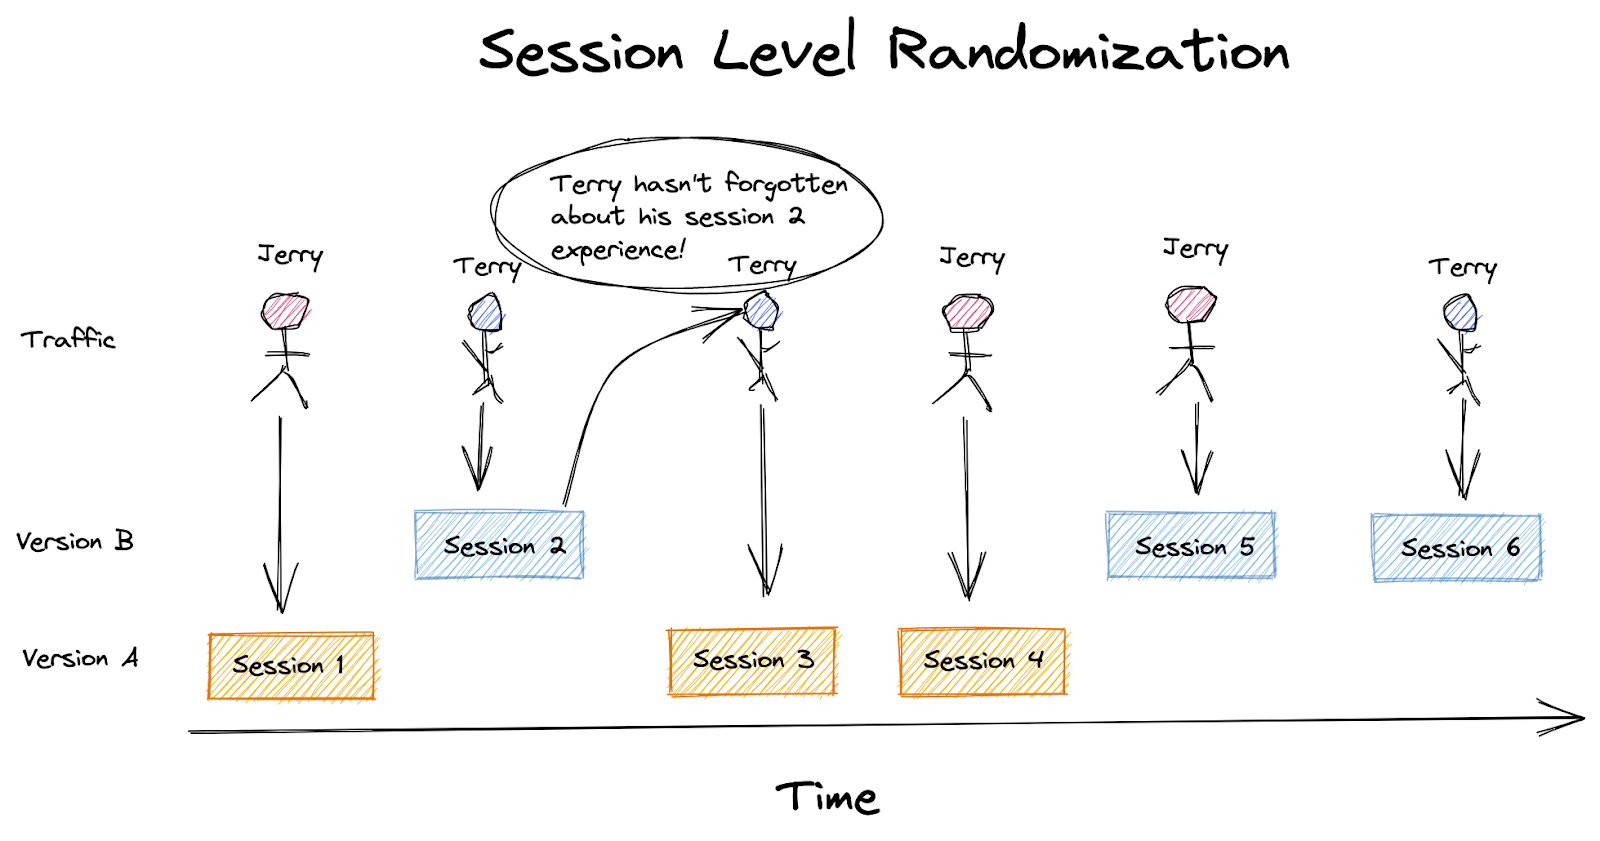 Carryover effects between sessions may violate the independent randomization units assumption